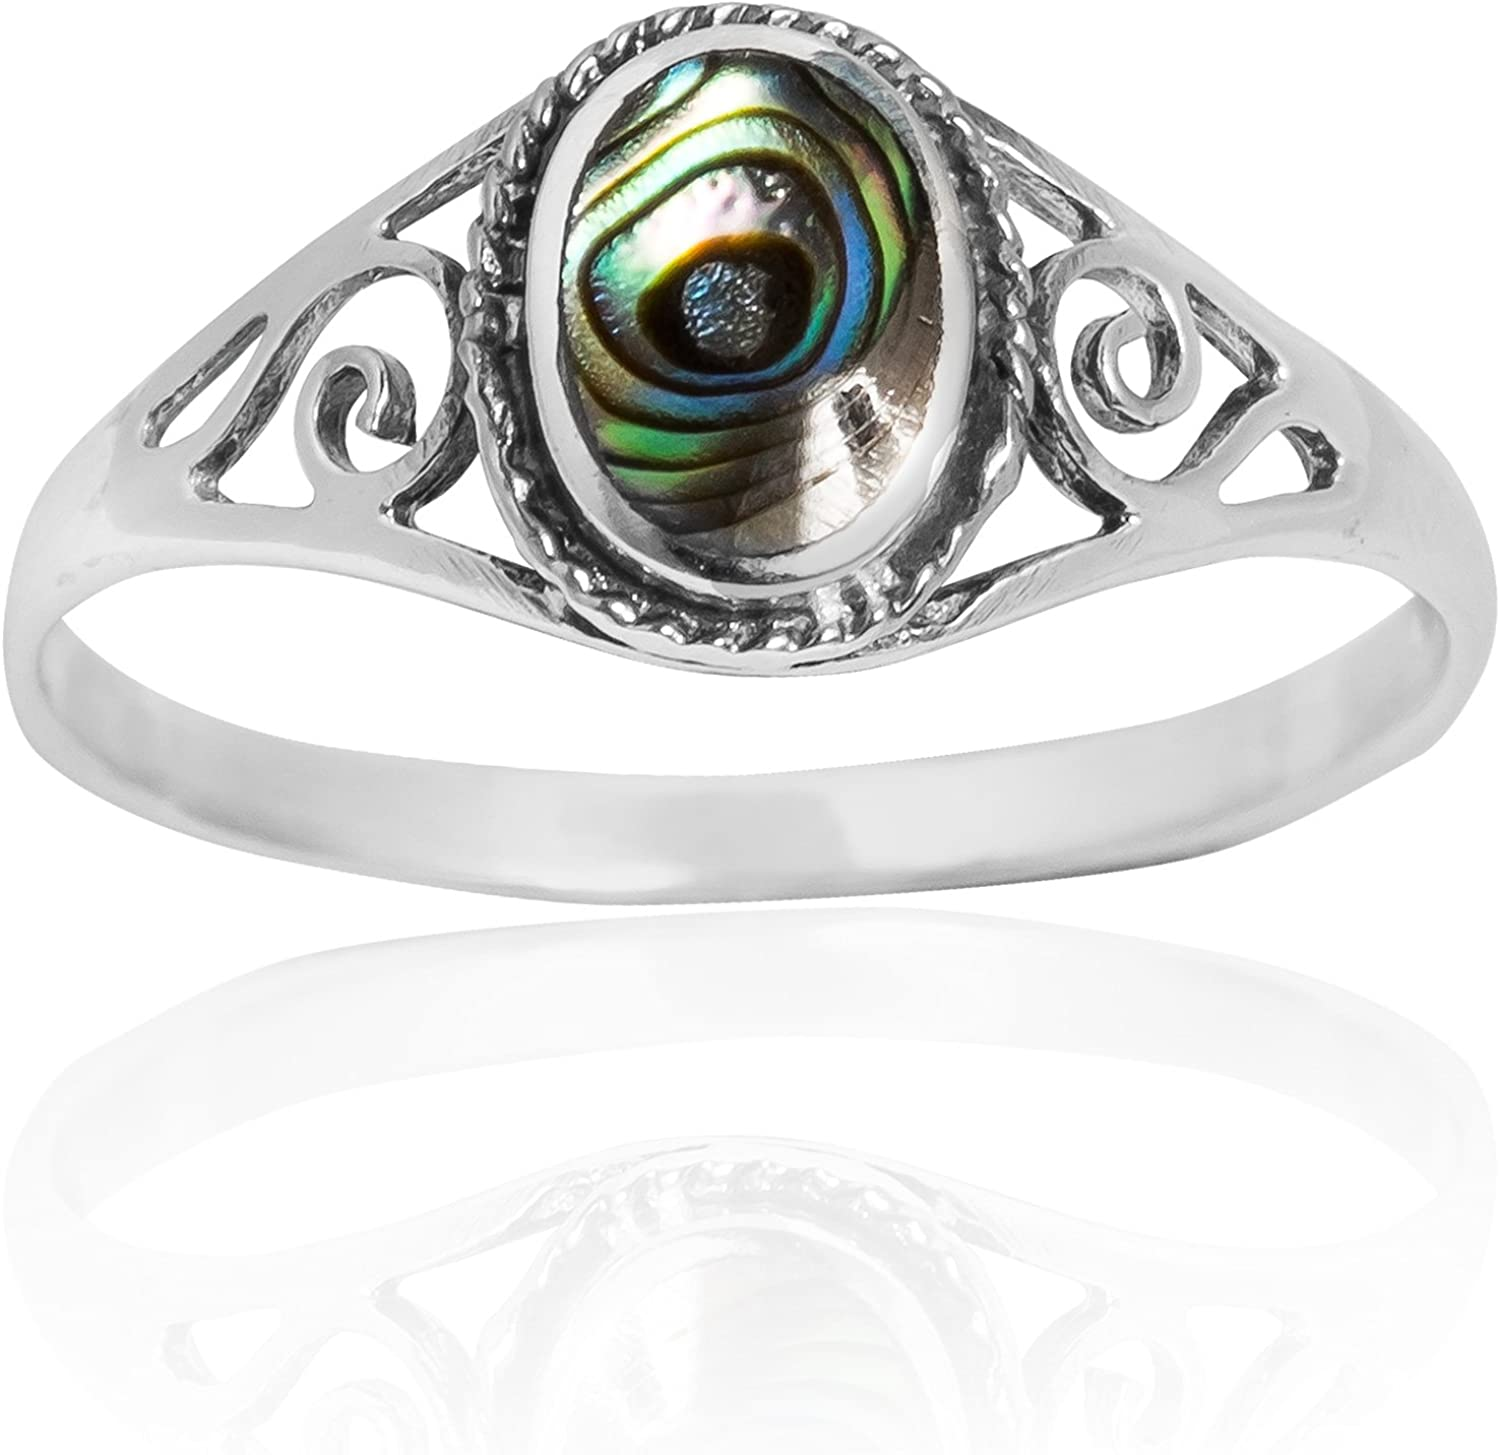 Mens Vintage Victorian Ring Solid 925 Sterling Silver Natural Abalone All Sizes